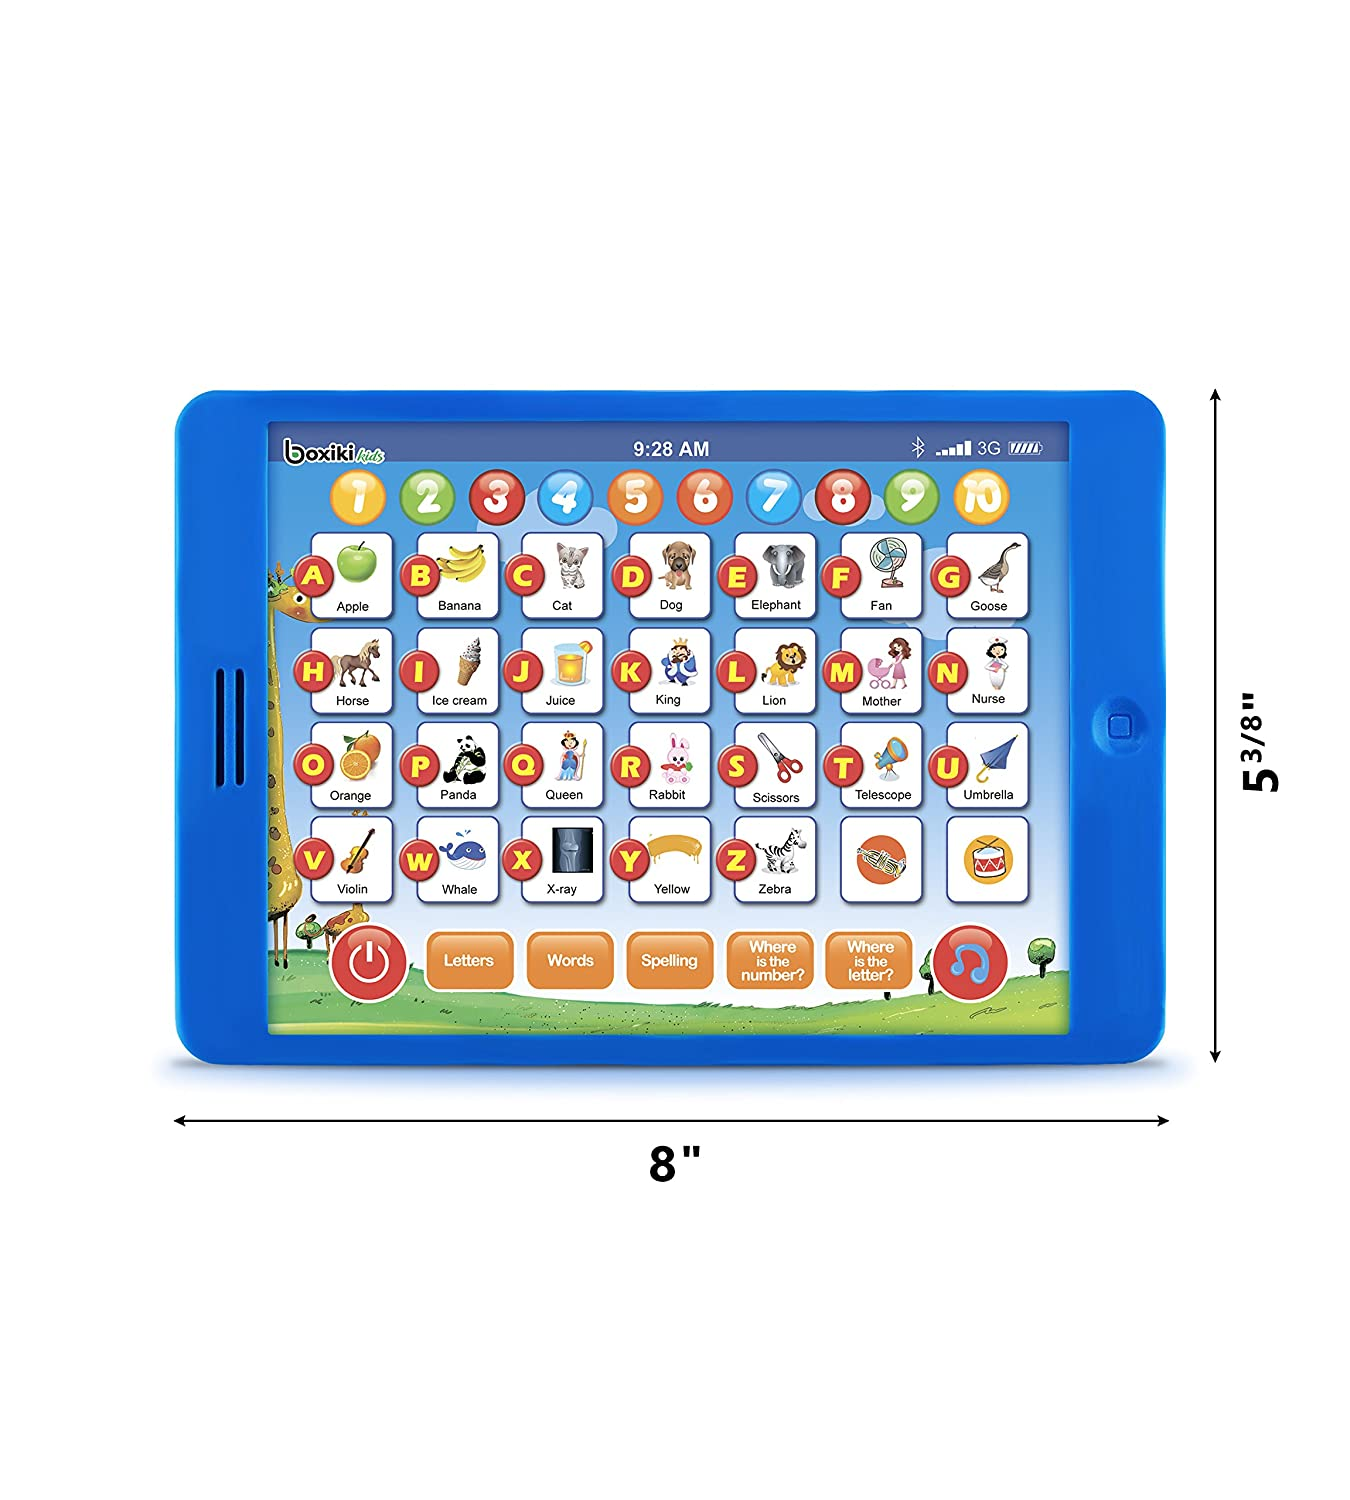 Learning Pad Fun Kids Tablet with 6 Toddler Learning Games by Boxiki